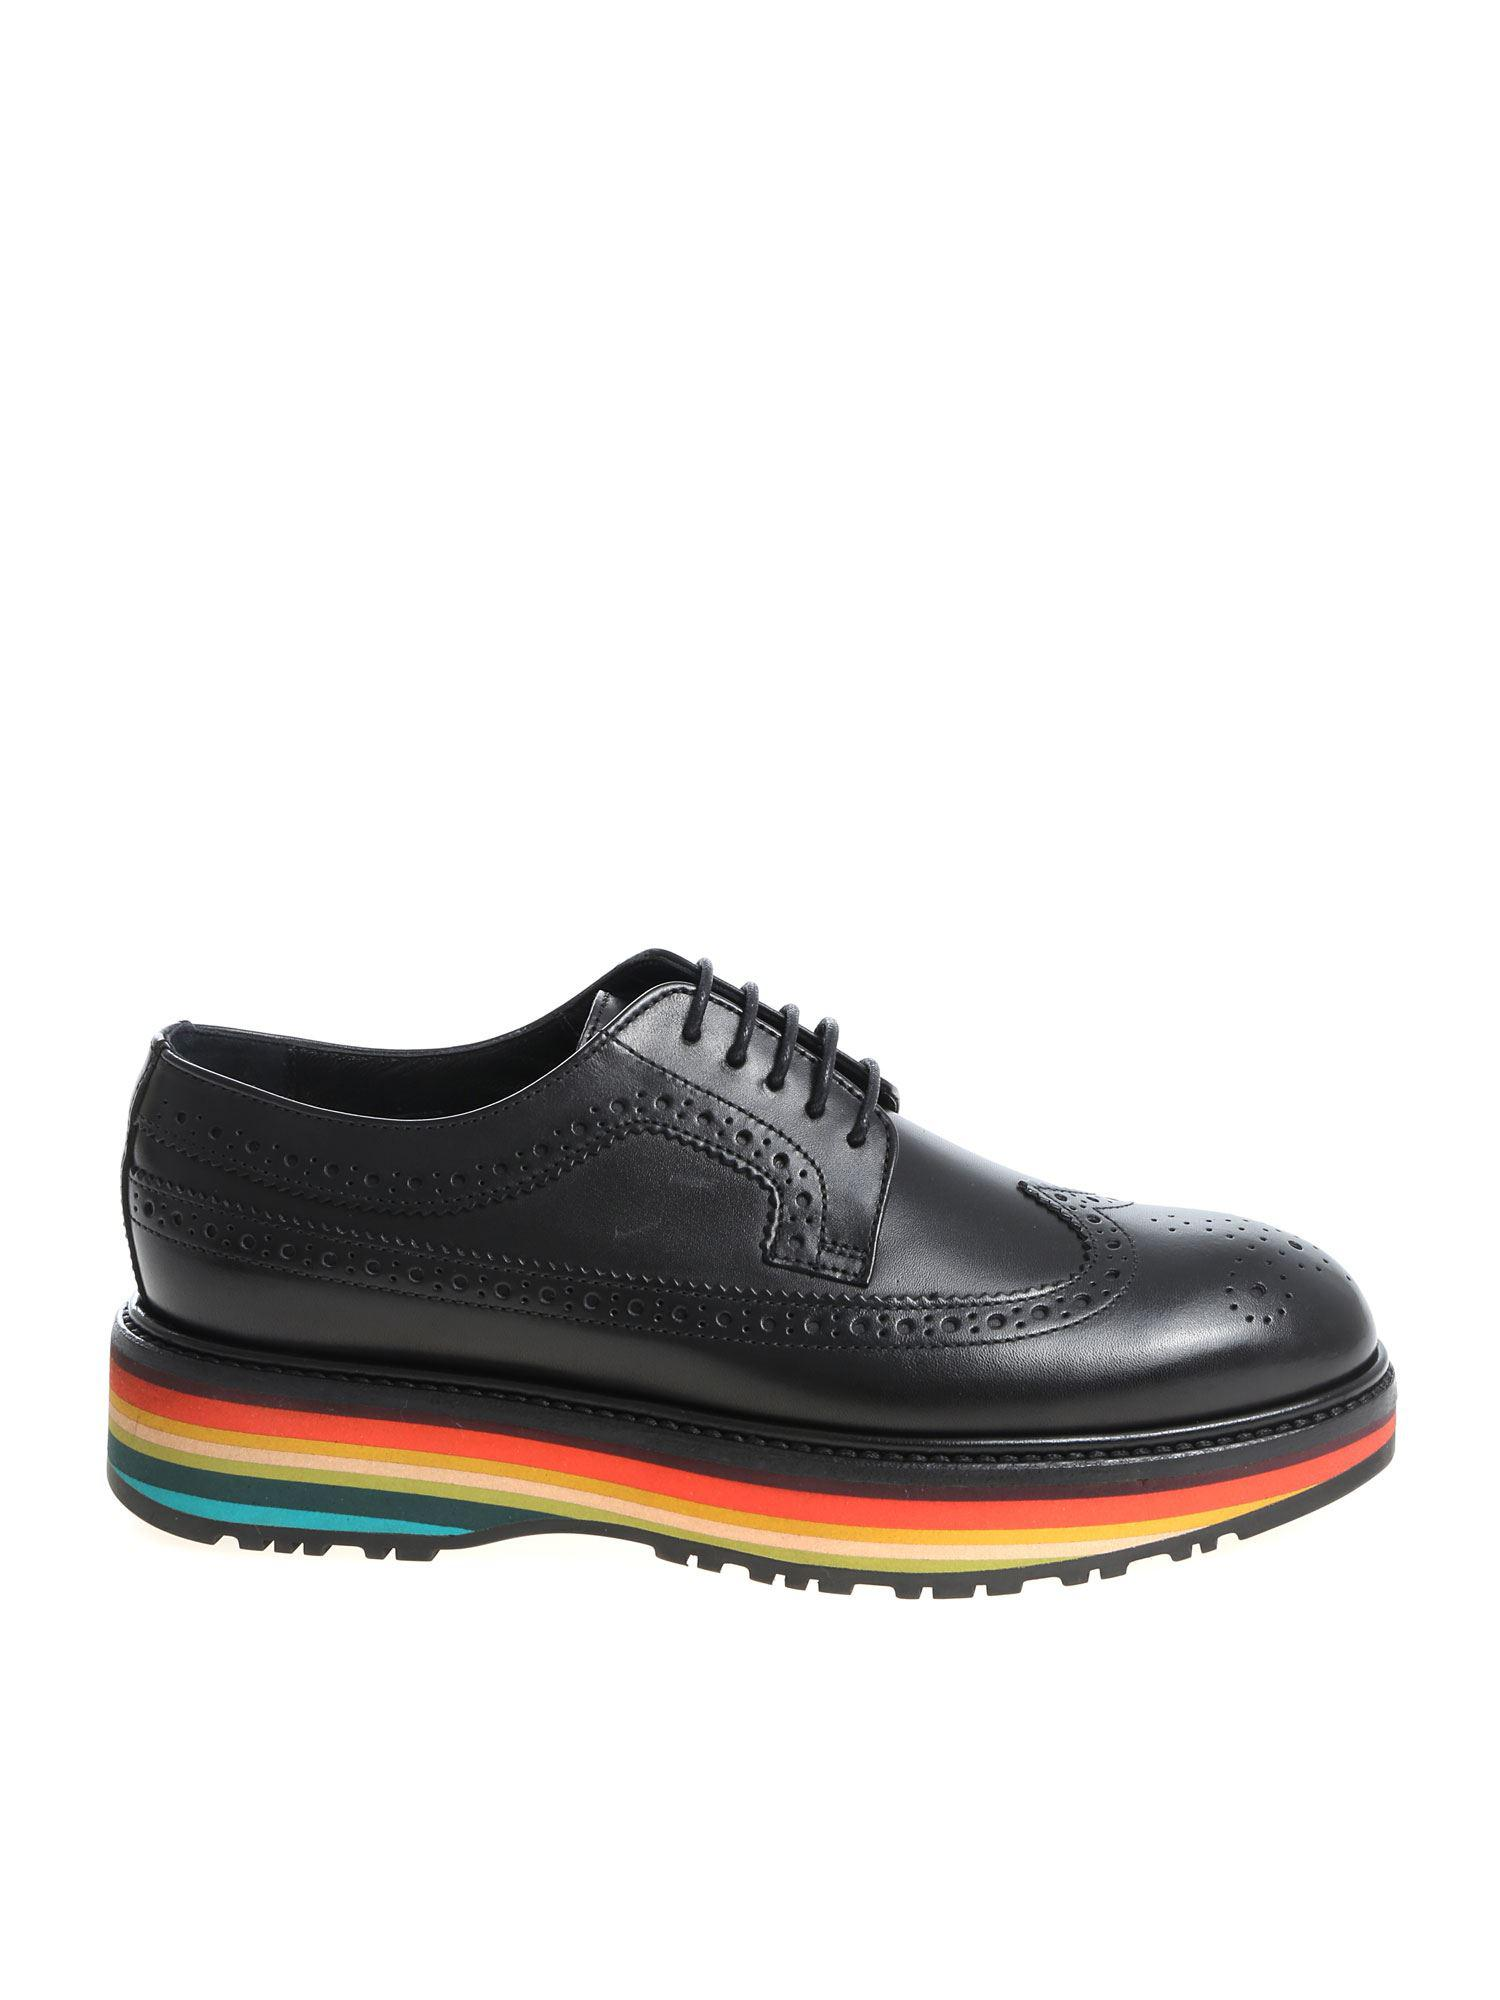 aa41fde6d6ca Lyst - PS by Paul Smith Black Leather Derby Shoes With Multicolor ...